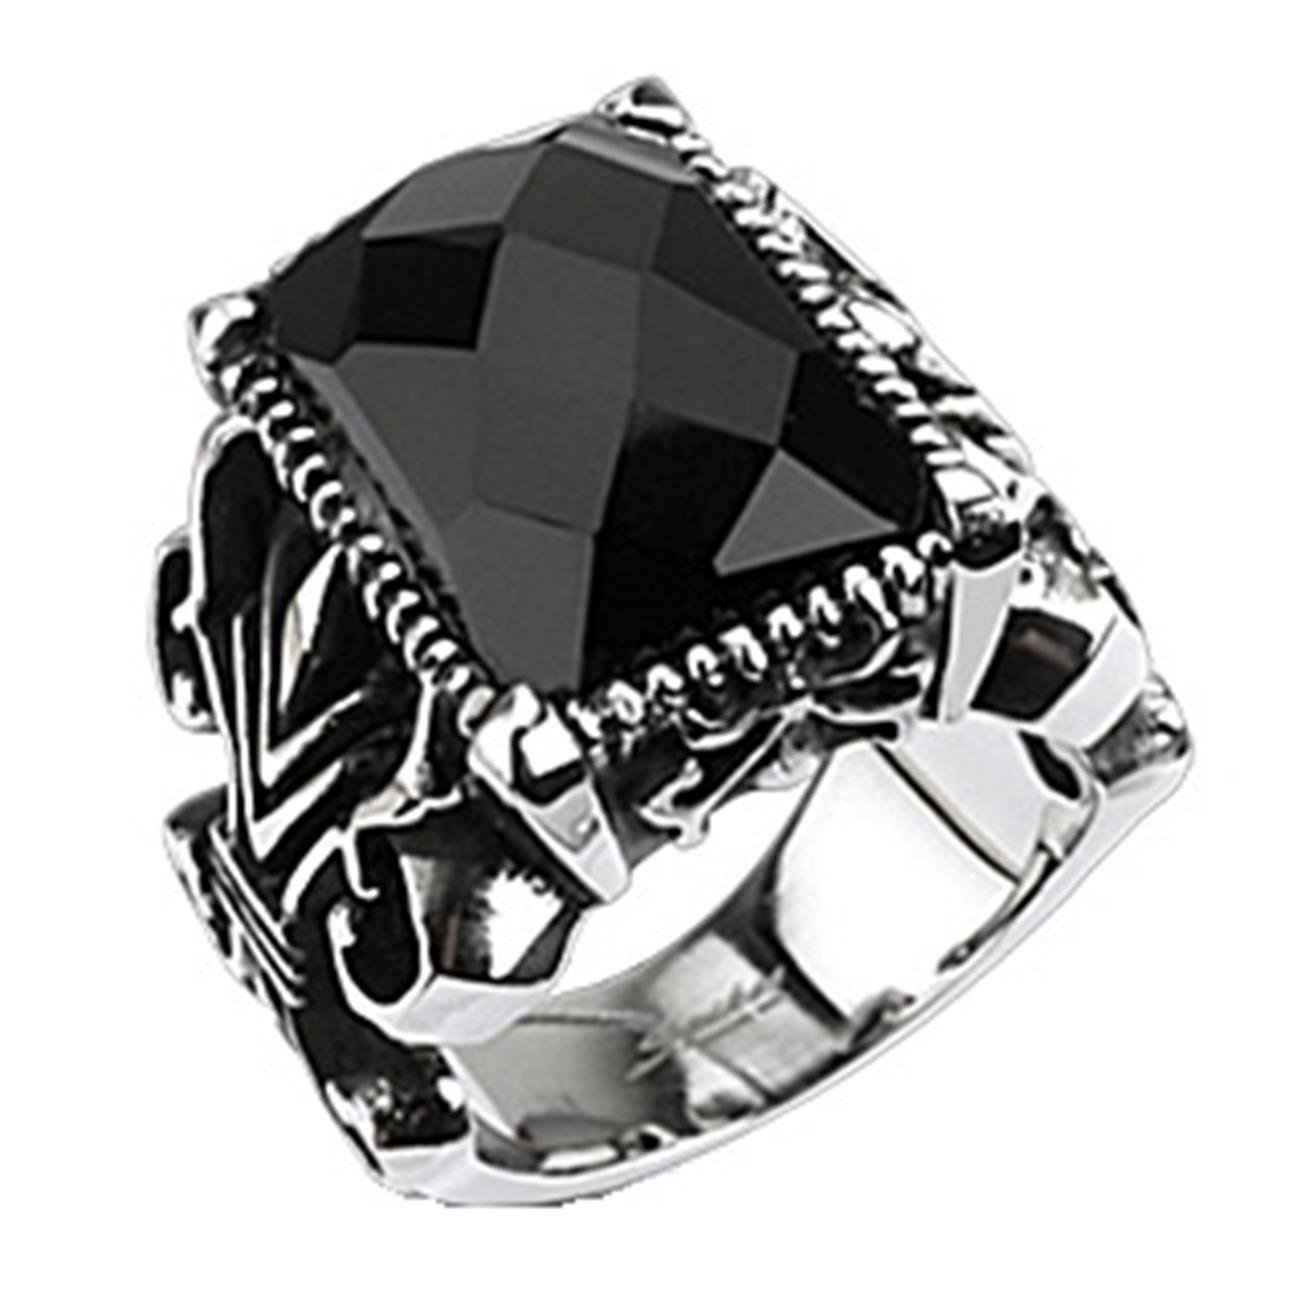 Paula & Fritz Stainless Steel Ring Surgical Steel 316L Gothic Ring Black Onyx Stone - Size = 69 (22.0) - [R-Q5196-13]